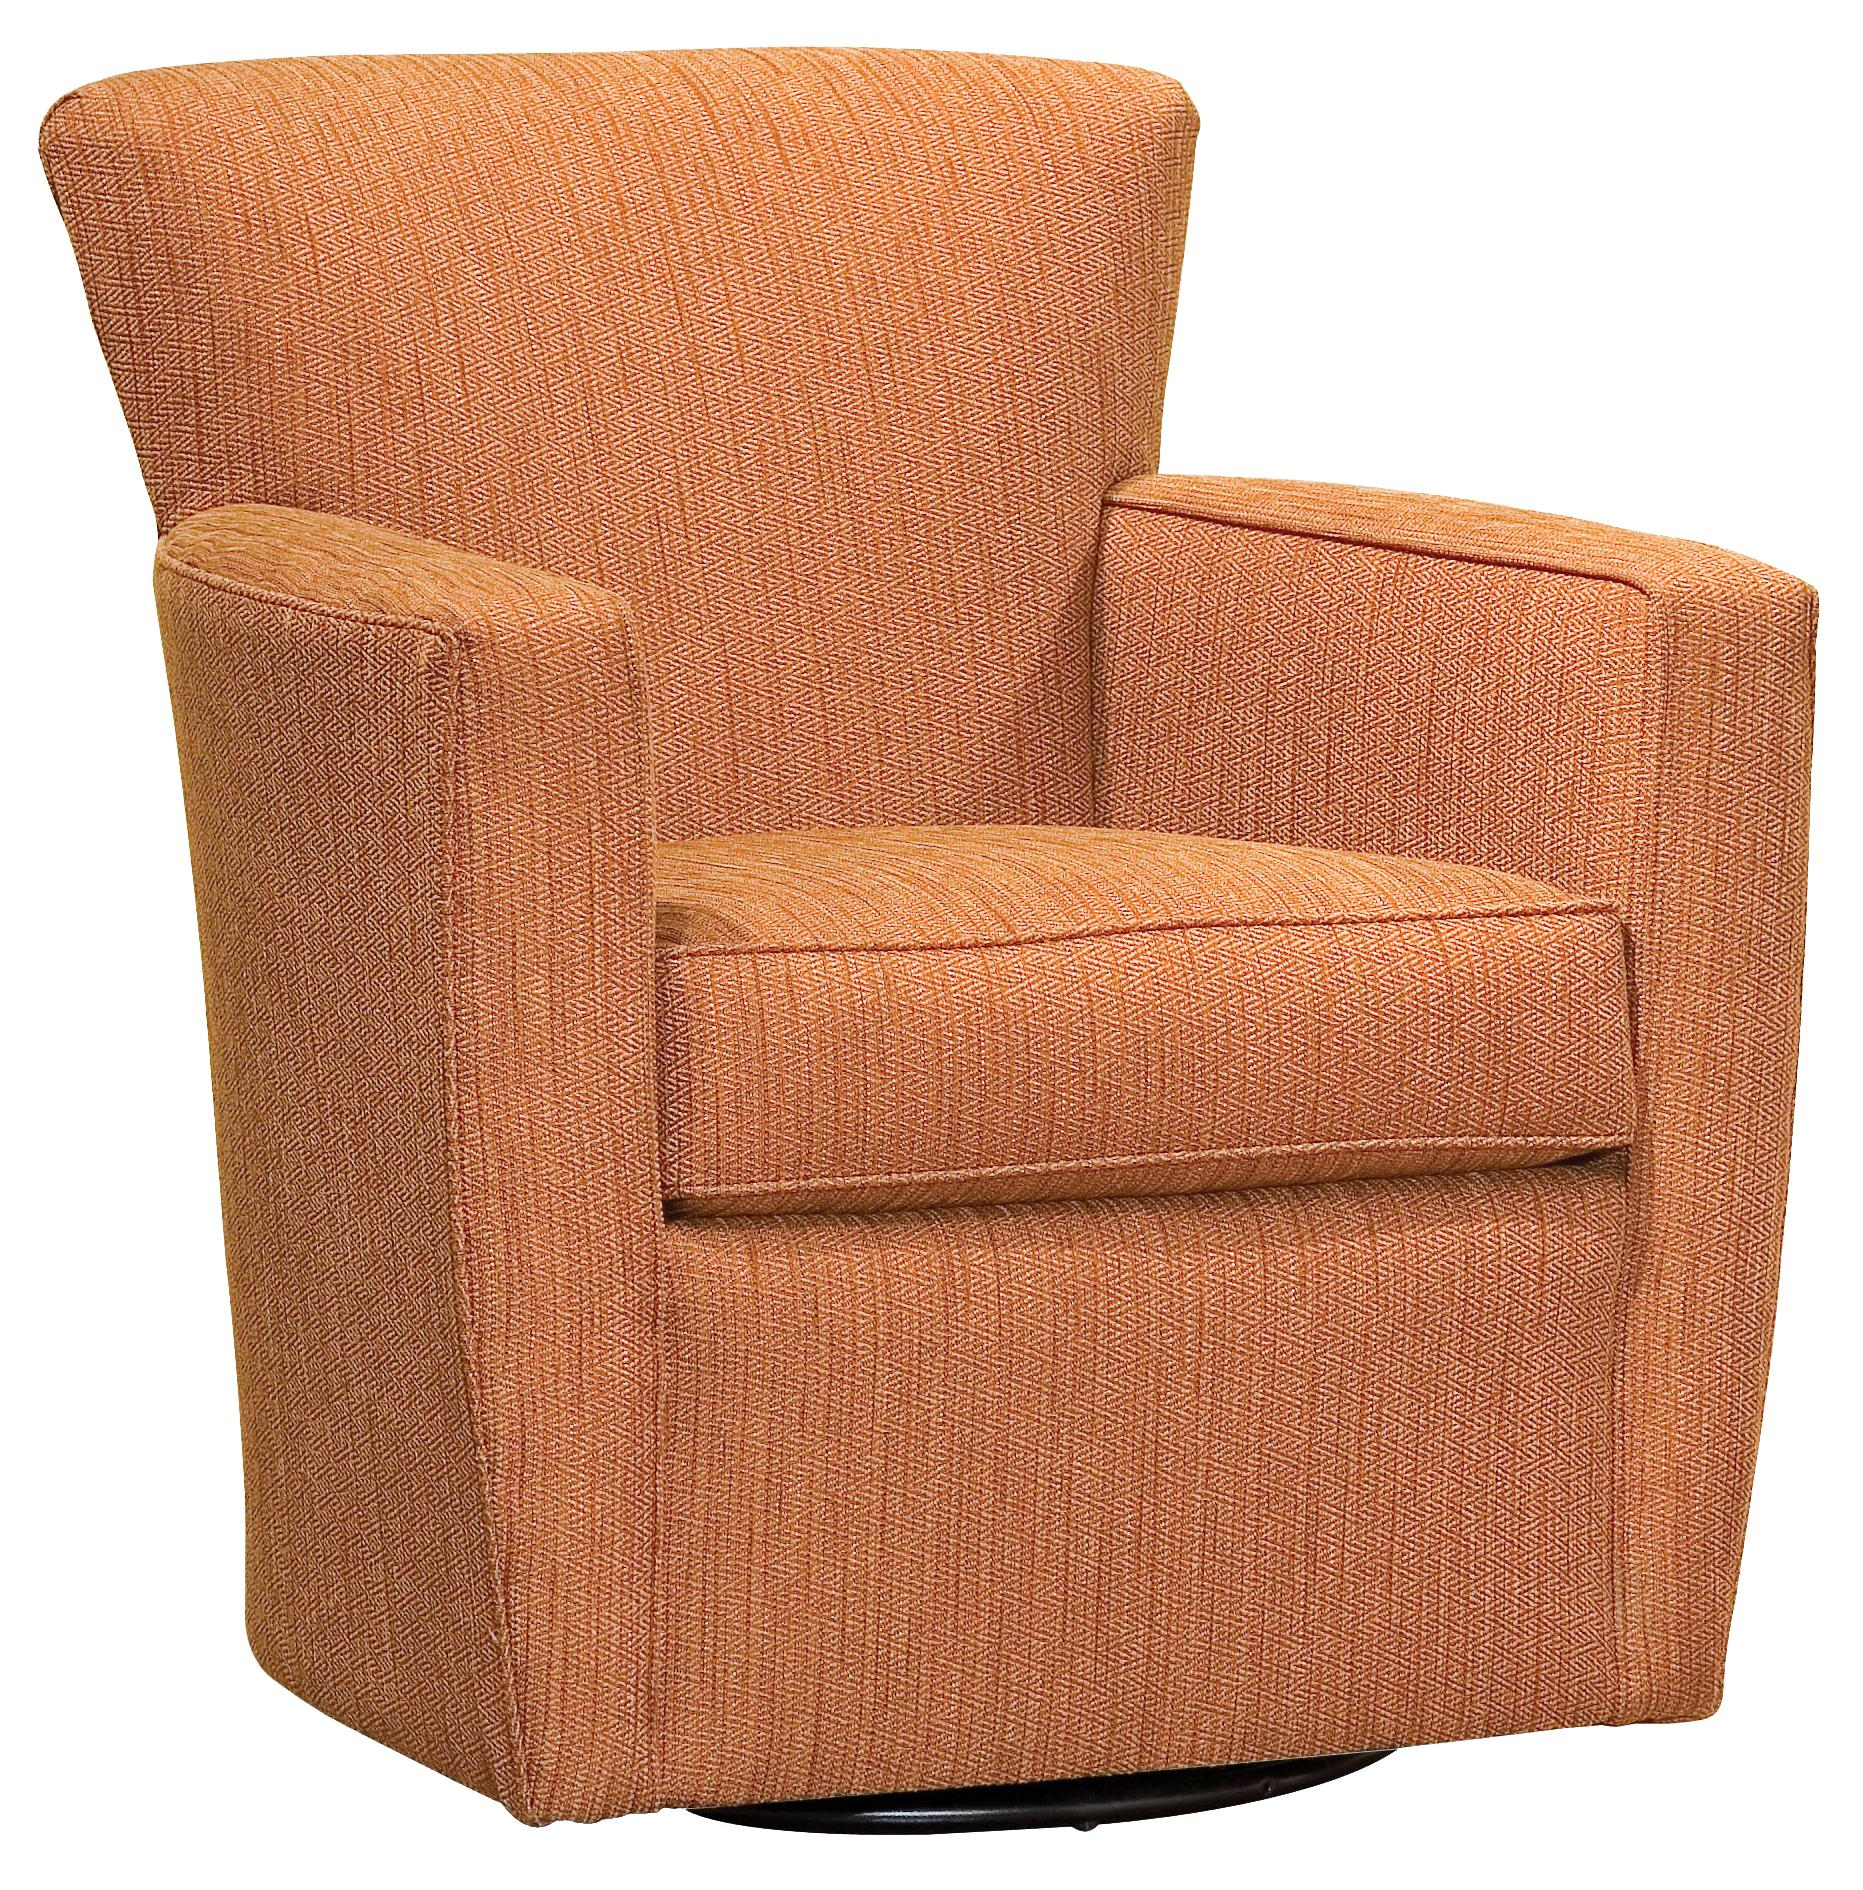 Fairfield Chairs Contemporary Swivel Chair - Item Number: 6121-31